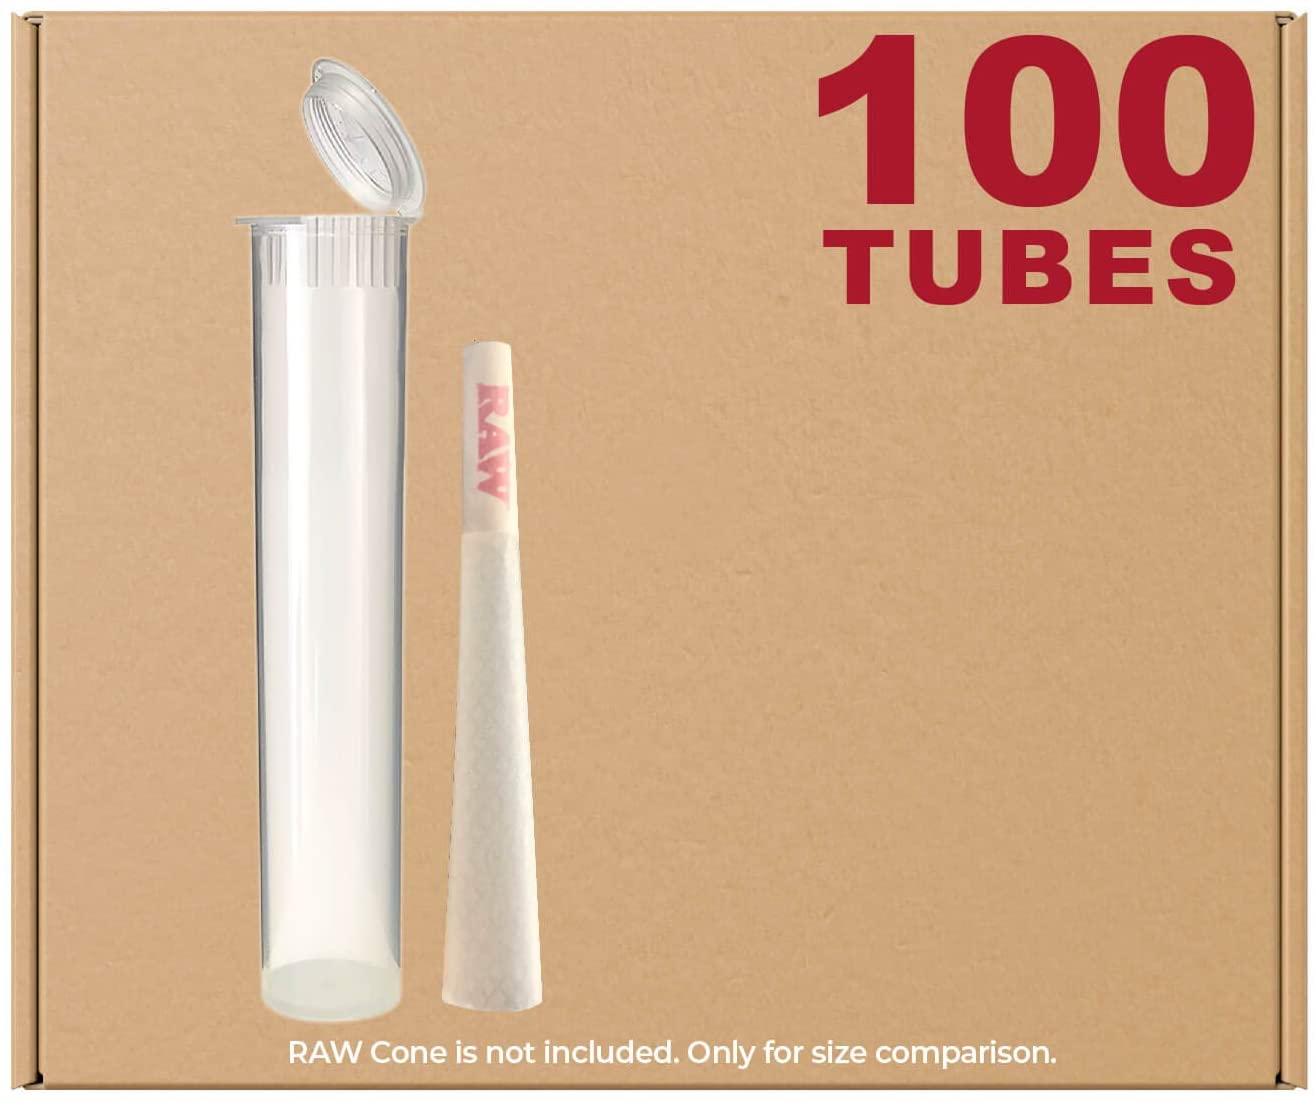 98MM Clear Doob Tubes   100 Pack   Waterproof Airtight and Smell Proof Blunt Vial Container   Child Resistant with Squeeze Pop Tops   BPA-Free   Ideal for Storing Pre Rolled Raw Cones